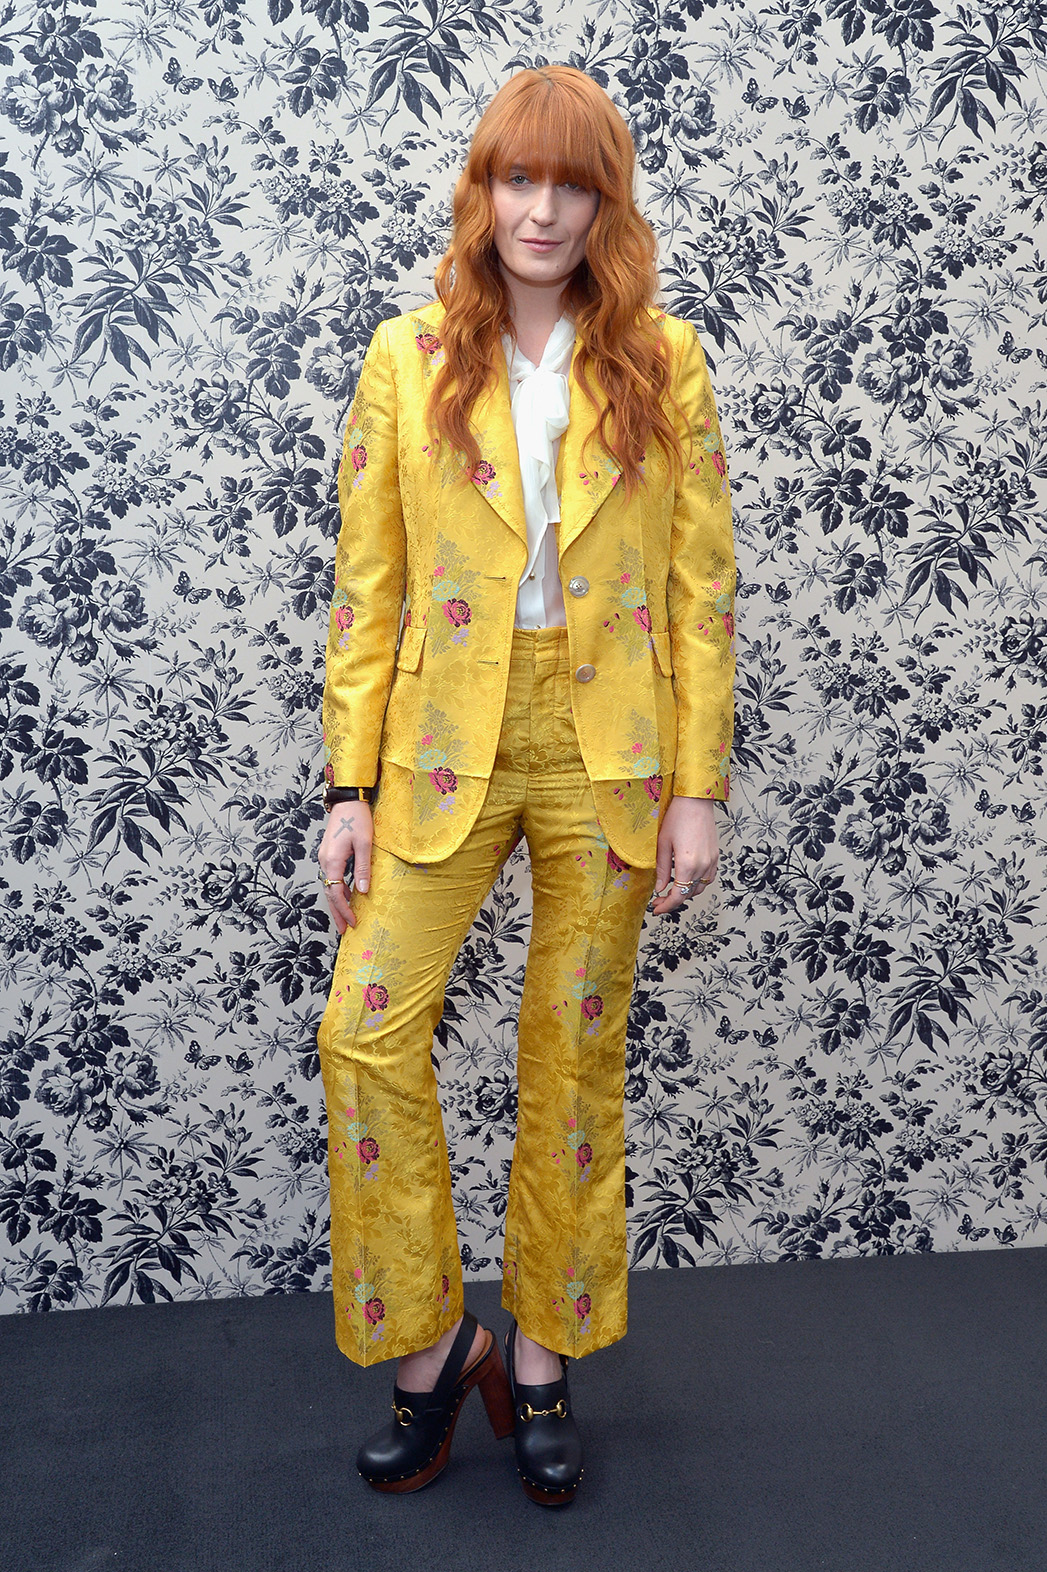 Gucci Timepieces And Jewelry Announces Florence Welch As 2016 Brand Ambassador - P 2016